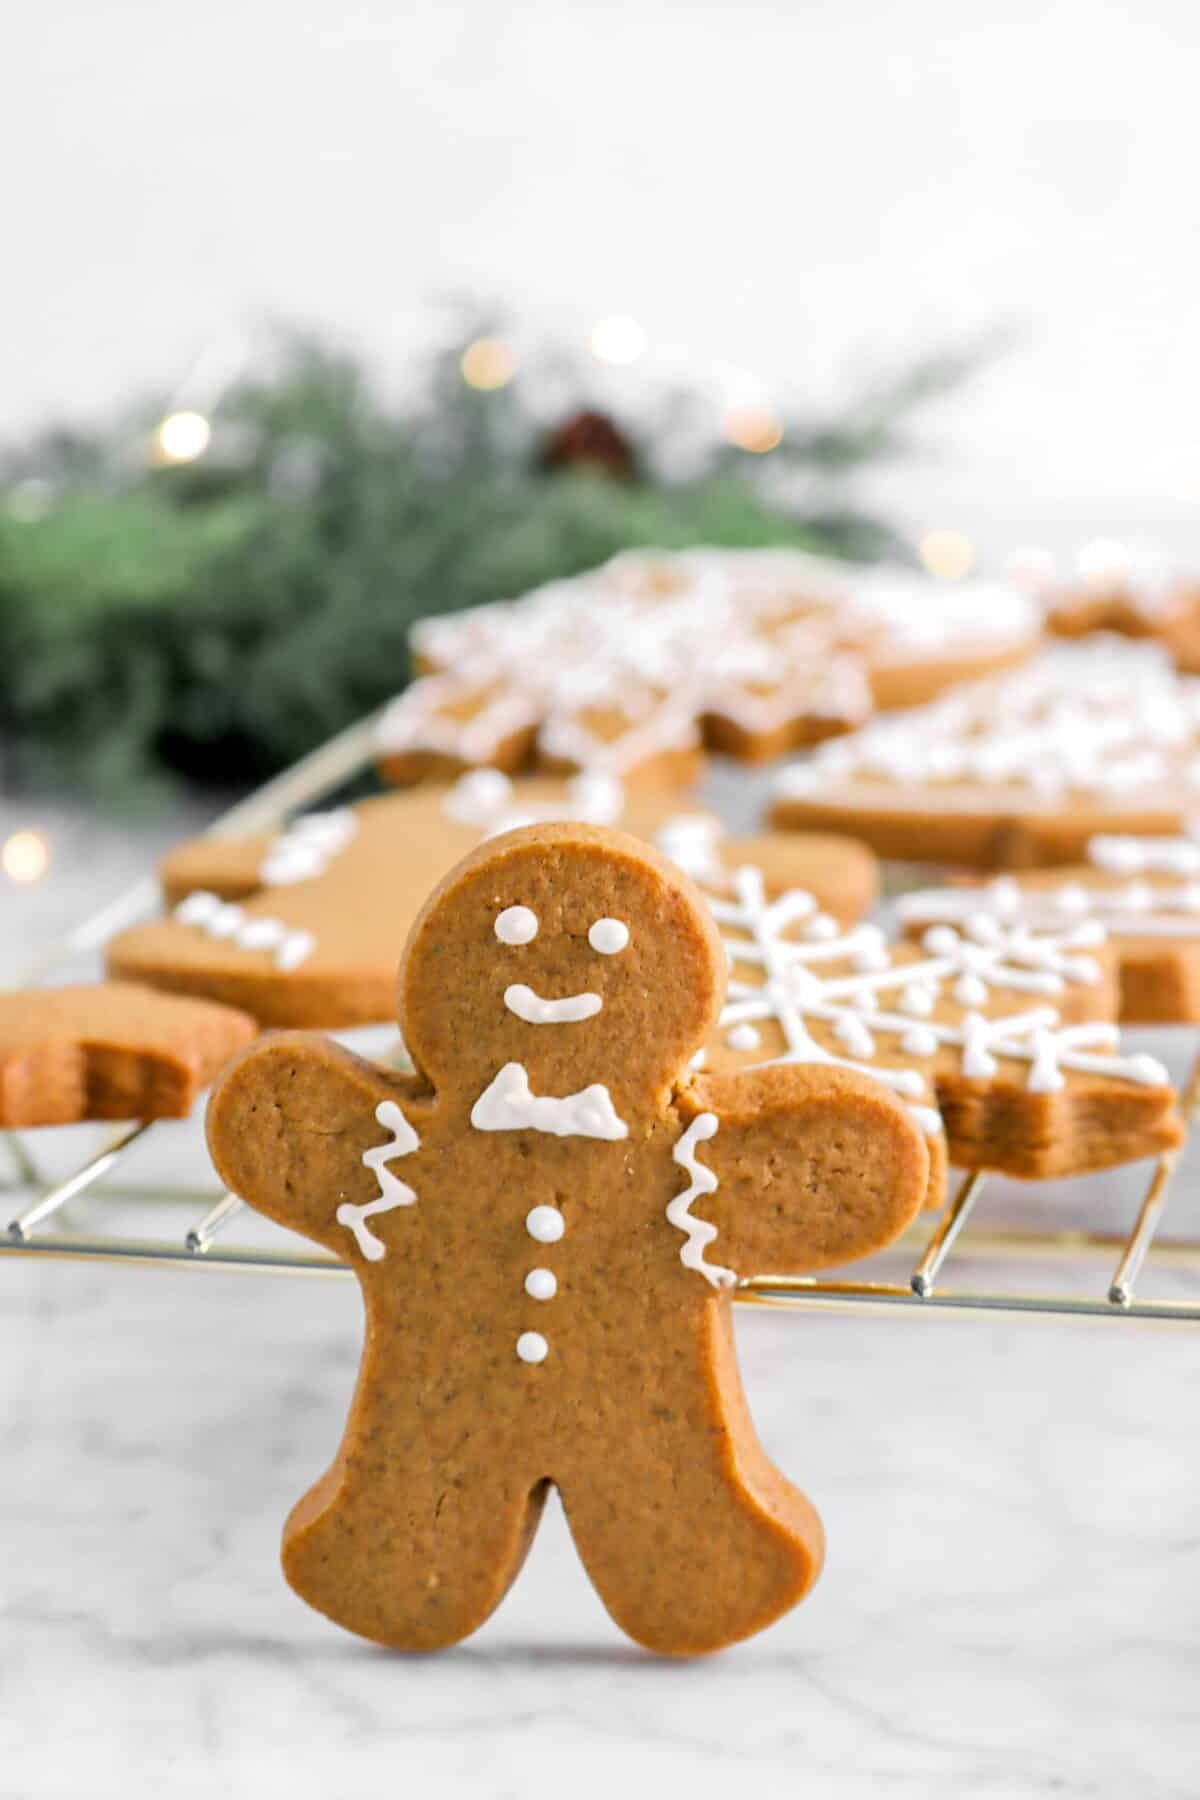 gingerbread man cookie standing up